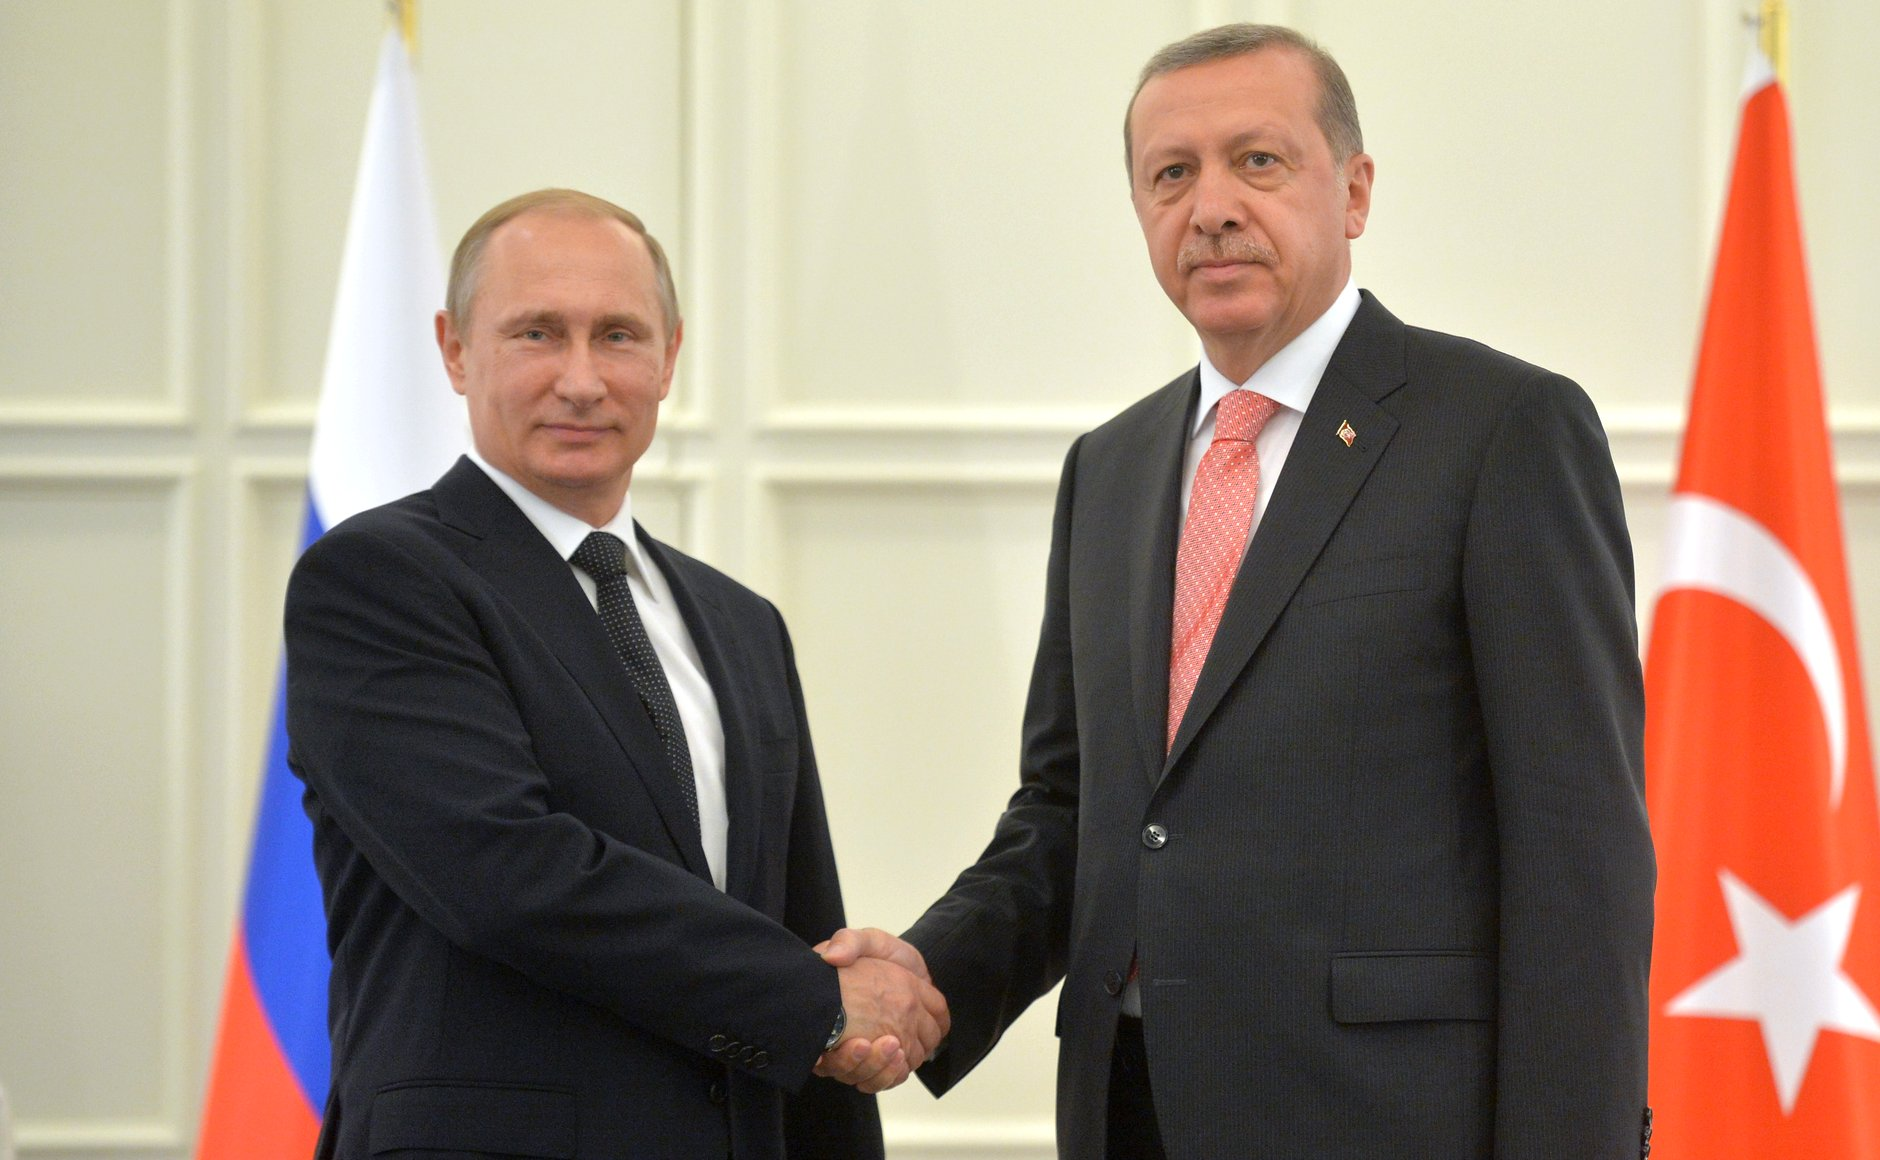 Spotkanie Erdoğan–Putin w czerwcu 2015 roku (fot. Kremlin.ru, Creative Commons Attribution 4.0 International)